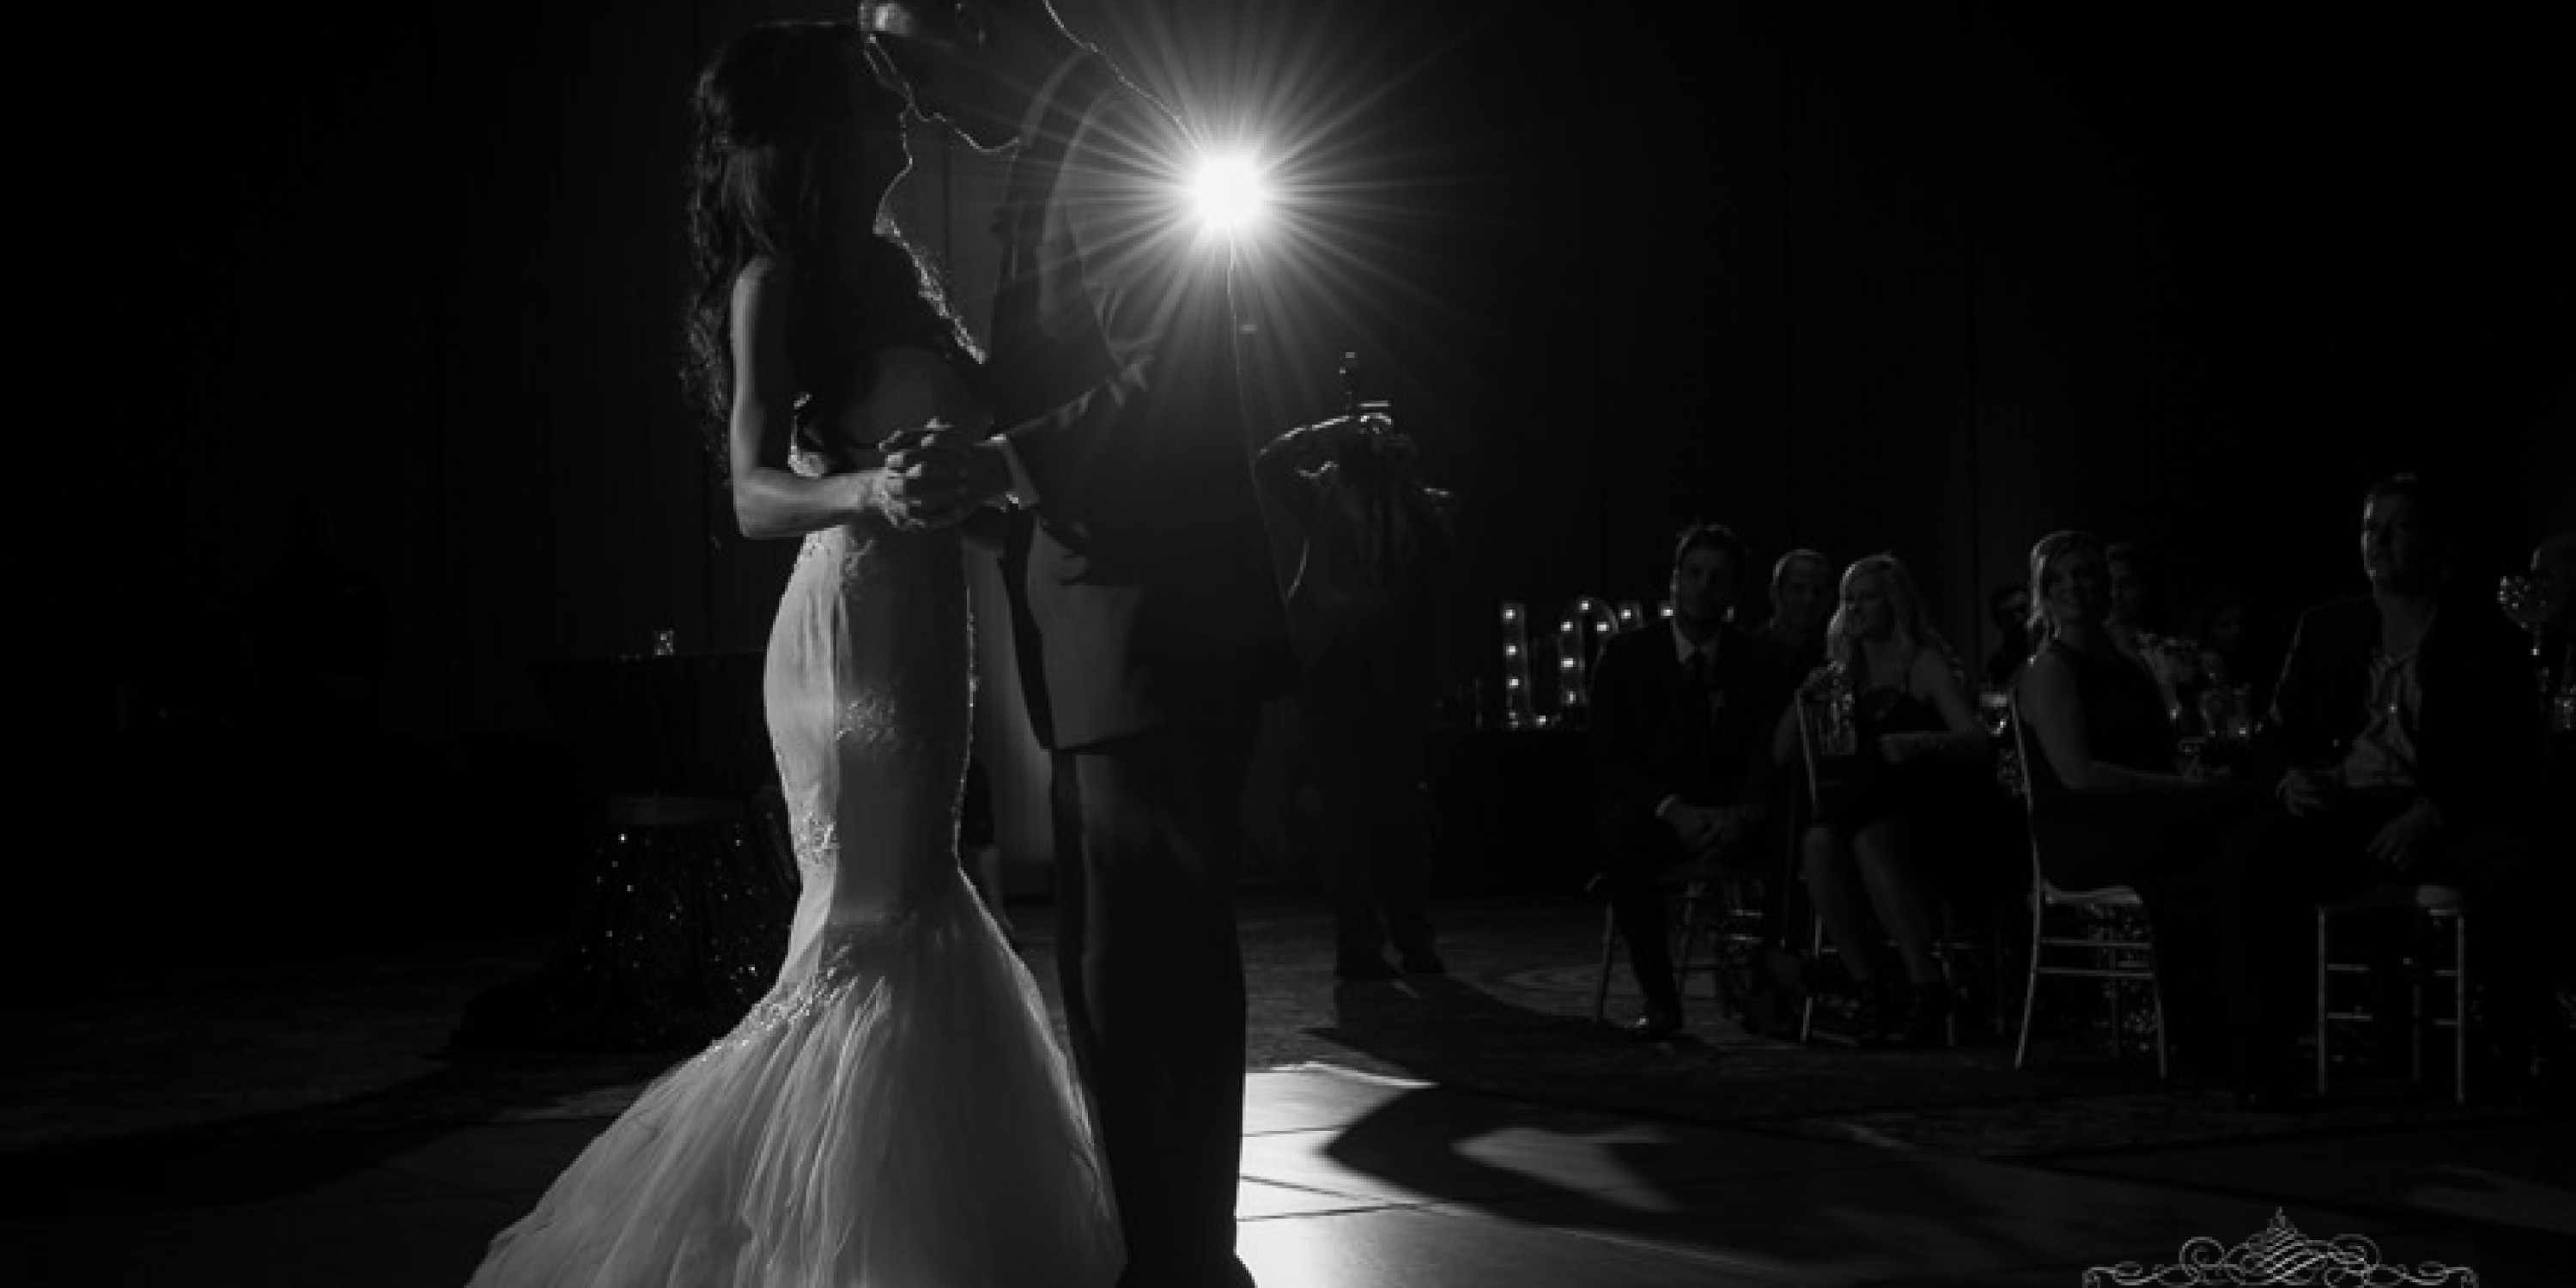 austin wedding photographers black and white wedding reception first dance photo of bride and groom